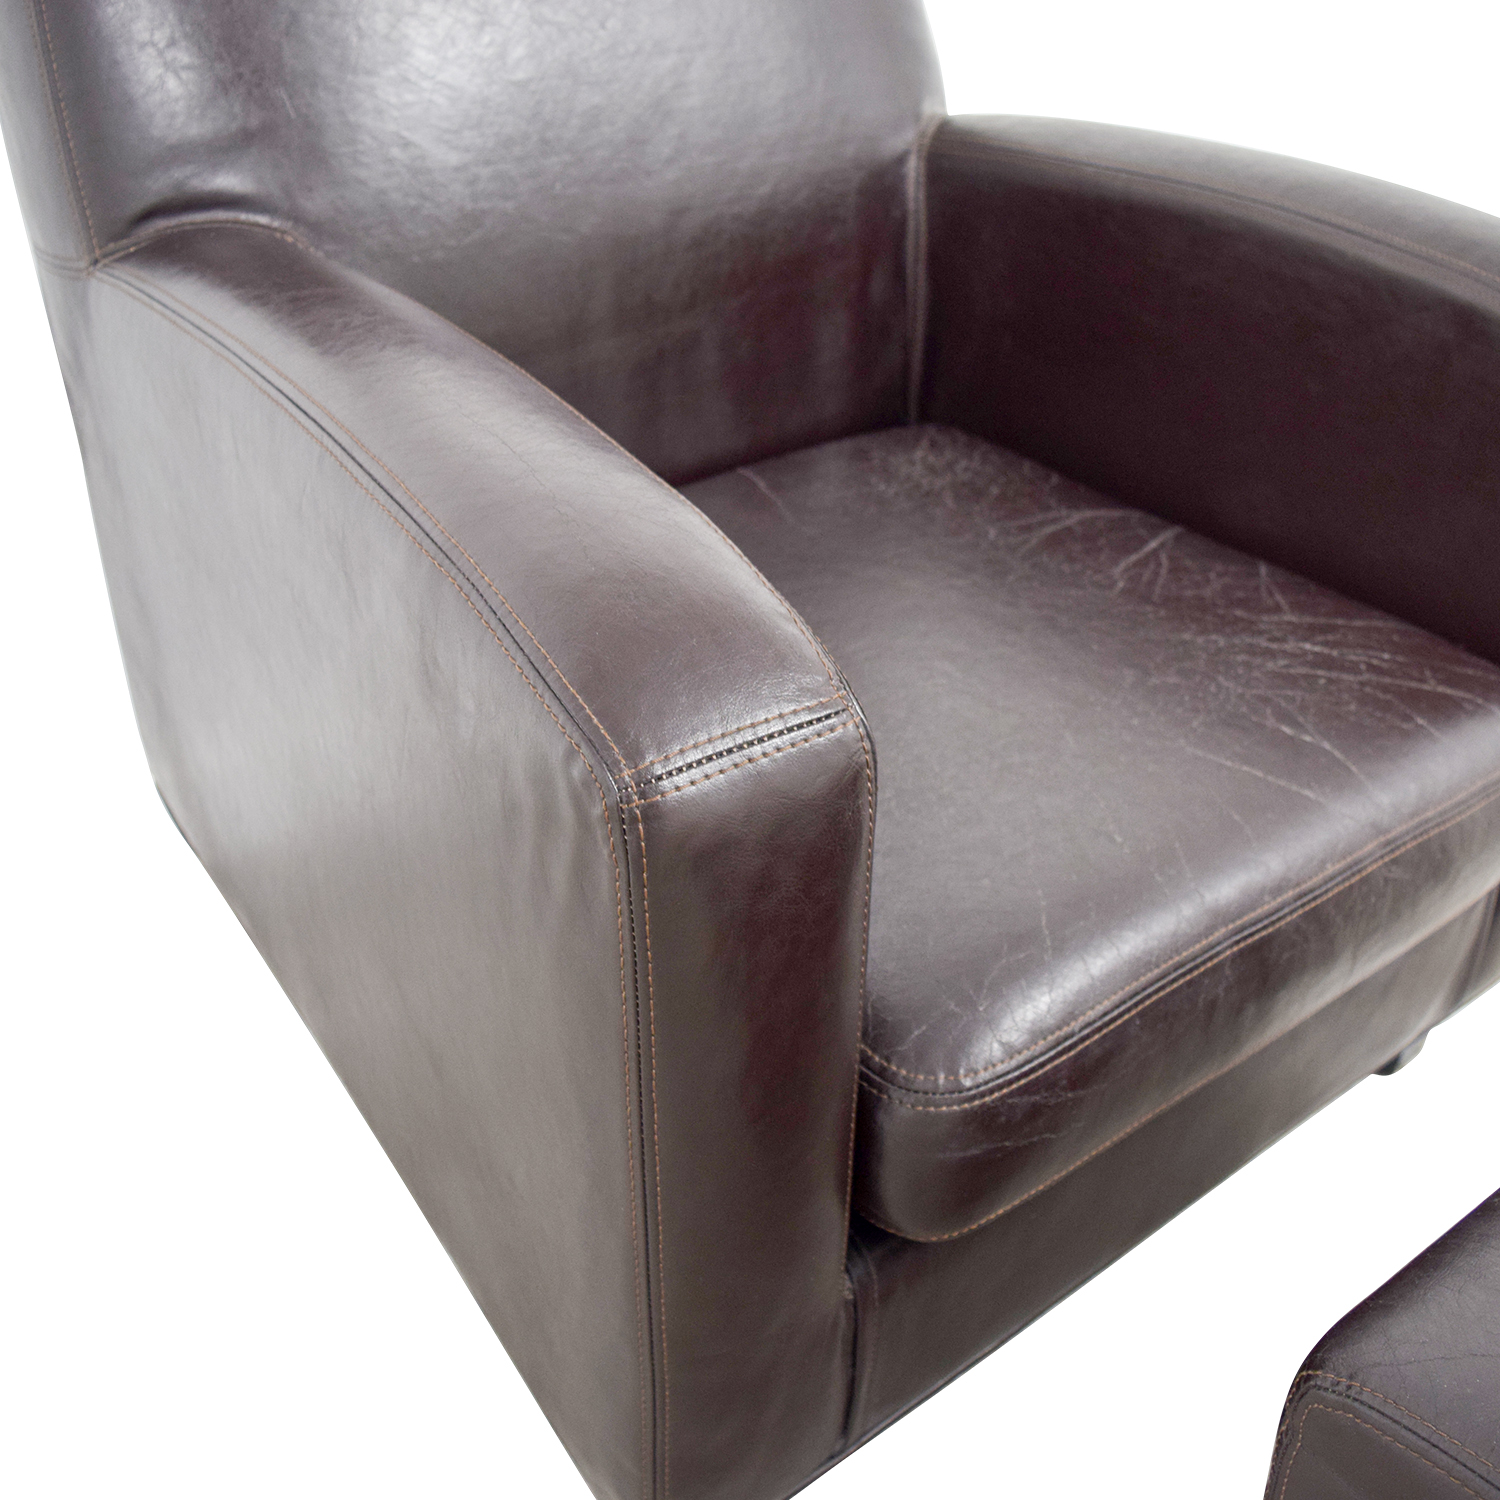 ikea recliner chairs sale heavy duty chair lifts 52 off bonded brown leather and ottoman